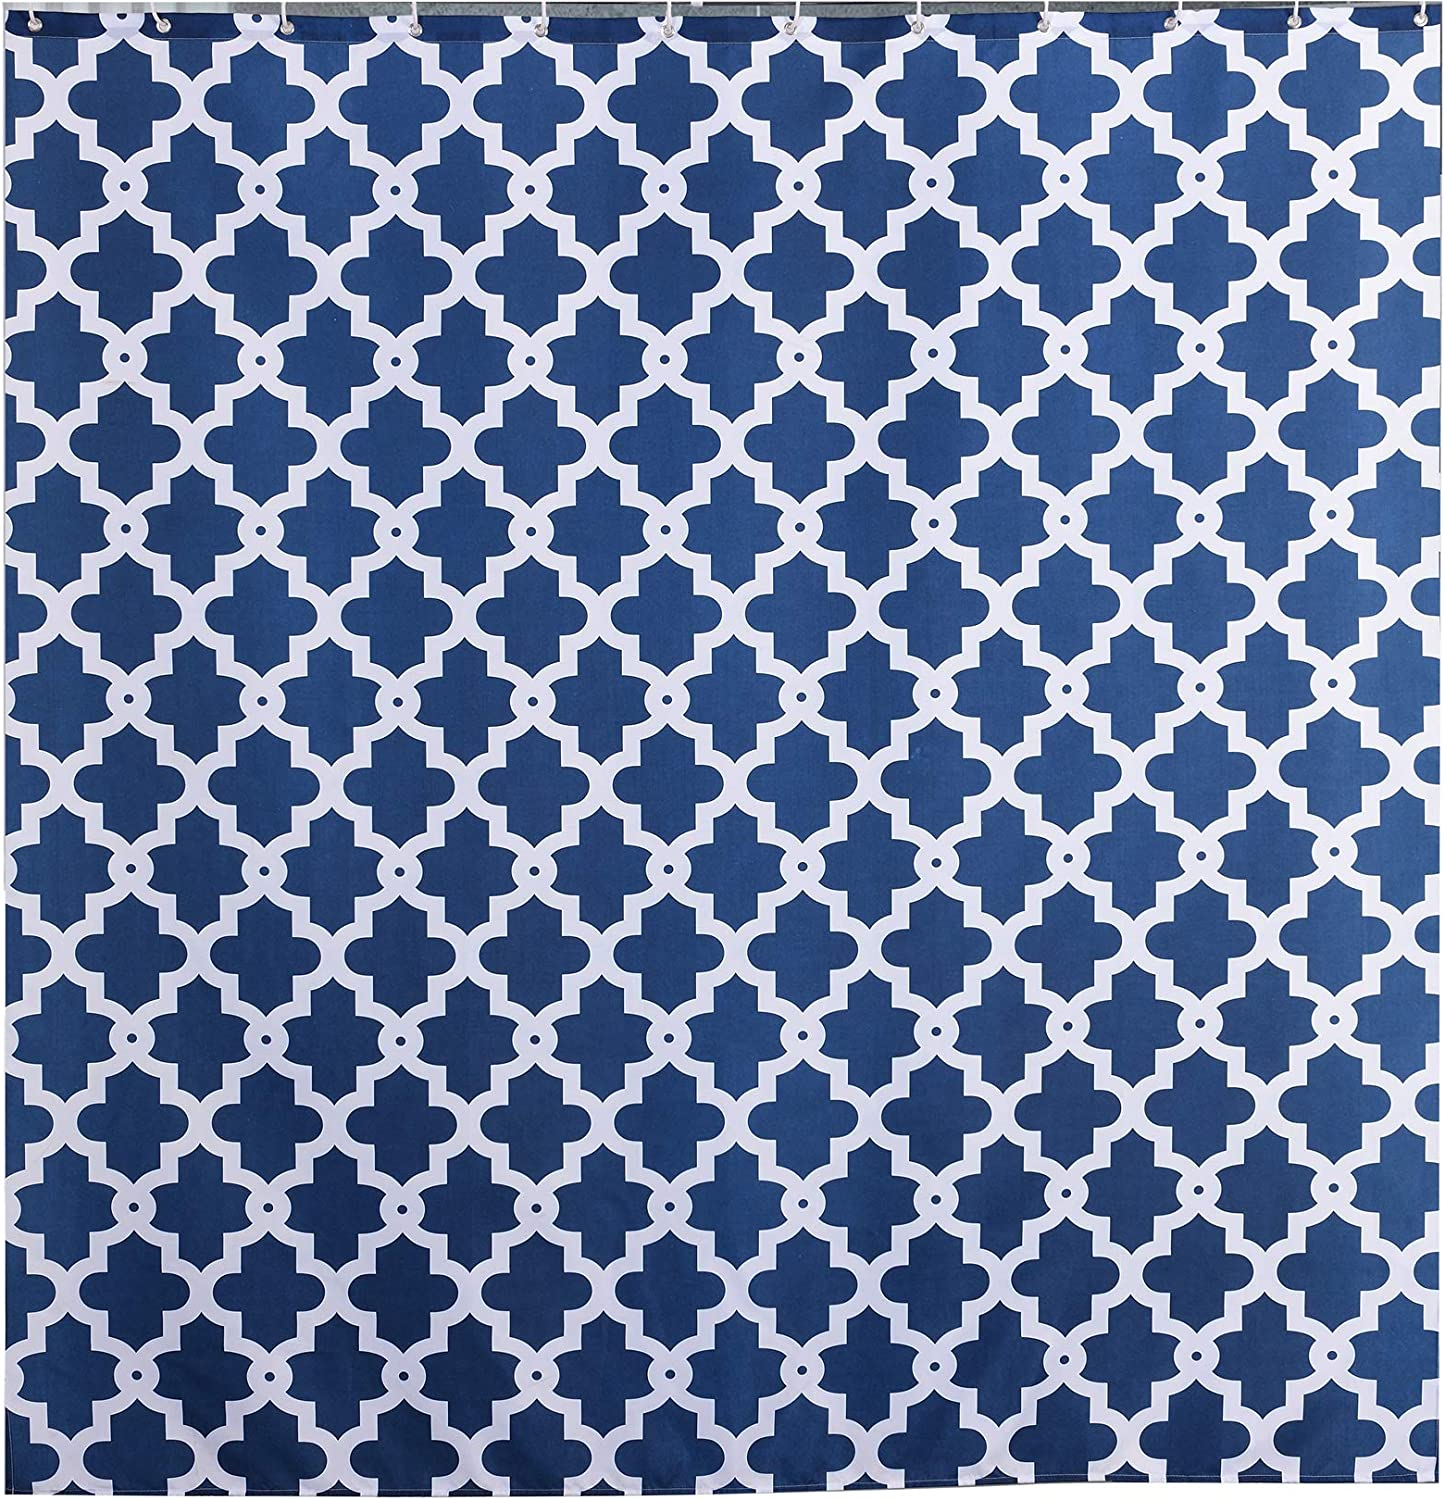 Sfoothome Geometric Printed Pattern,Mildew Proof and Waterproof Polyester Fabric Shower Curtain for Bathroom 180 W * 200 L Navy